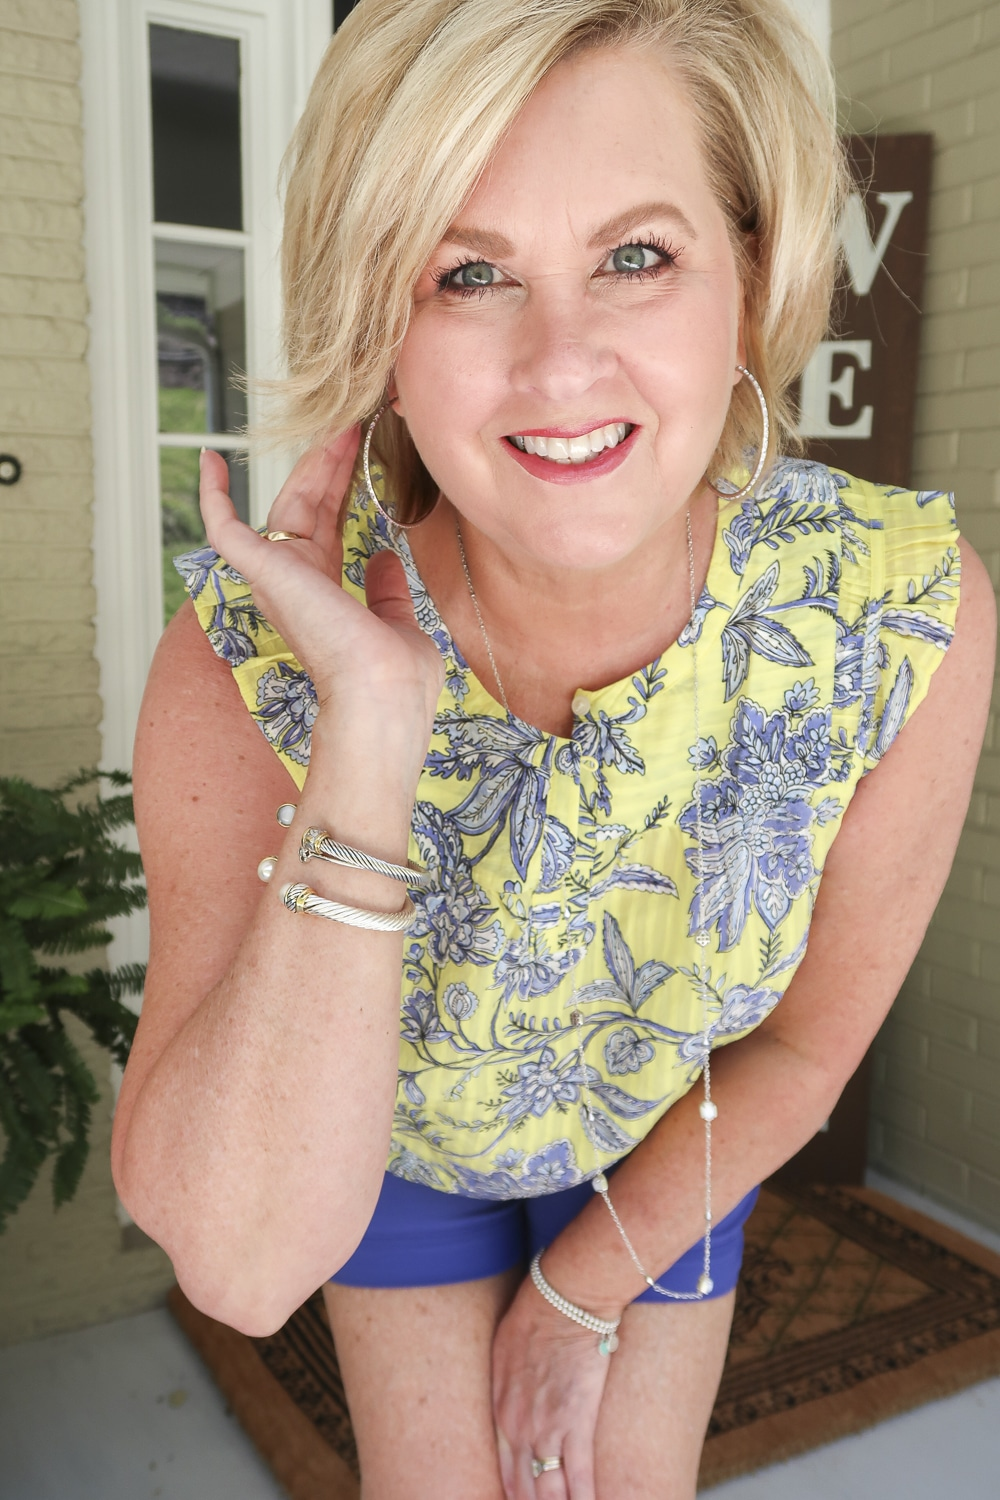 Fashion Blogger 50 Is Not Old wearing a yellow top with a blue floral design and silver jewelry